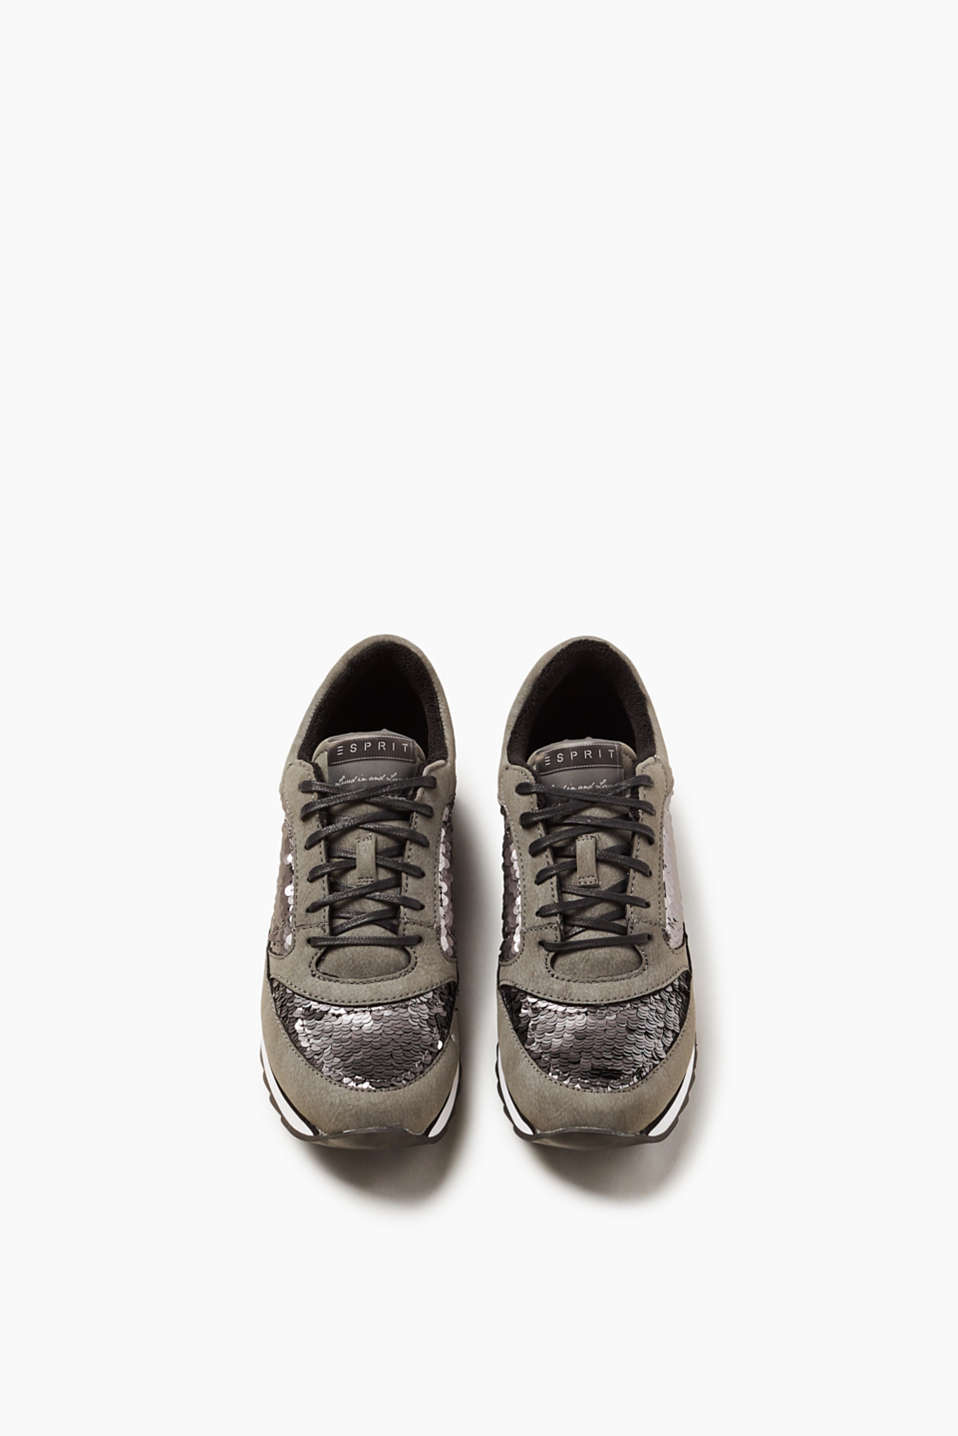 Lace-up trainers trimmed with sequins